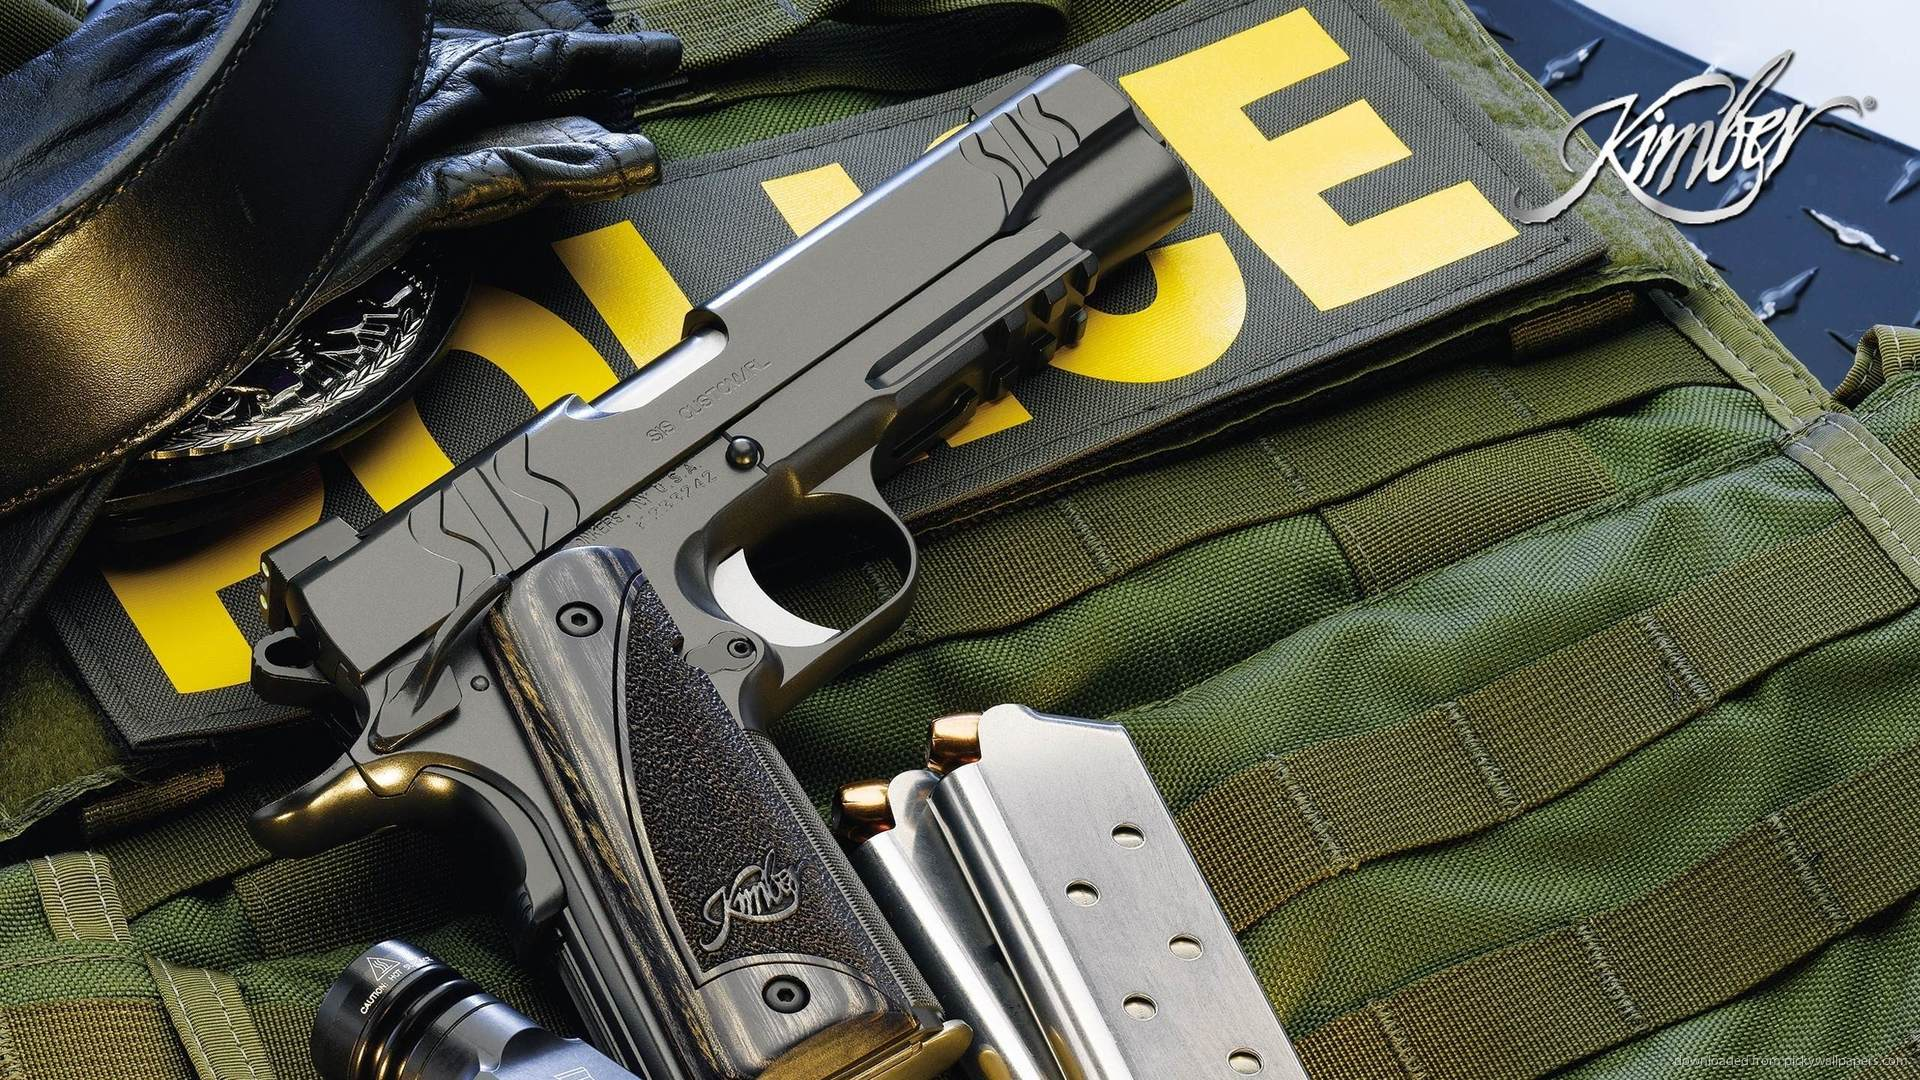 Colt 1911 Police Wallpaper For iPad 2 1920x1080